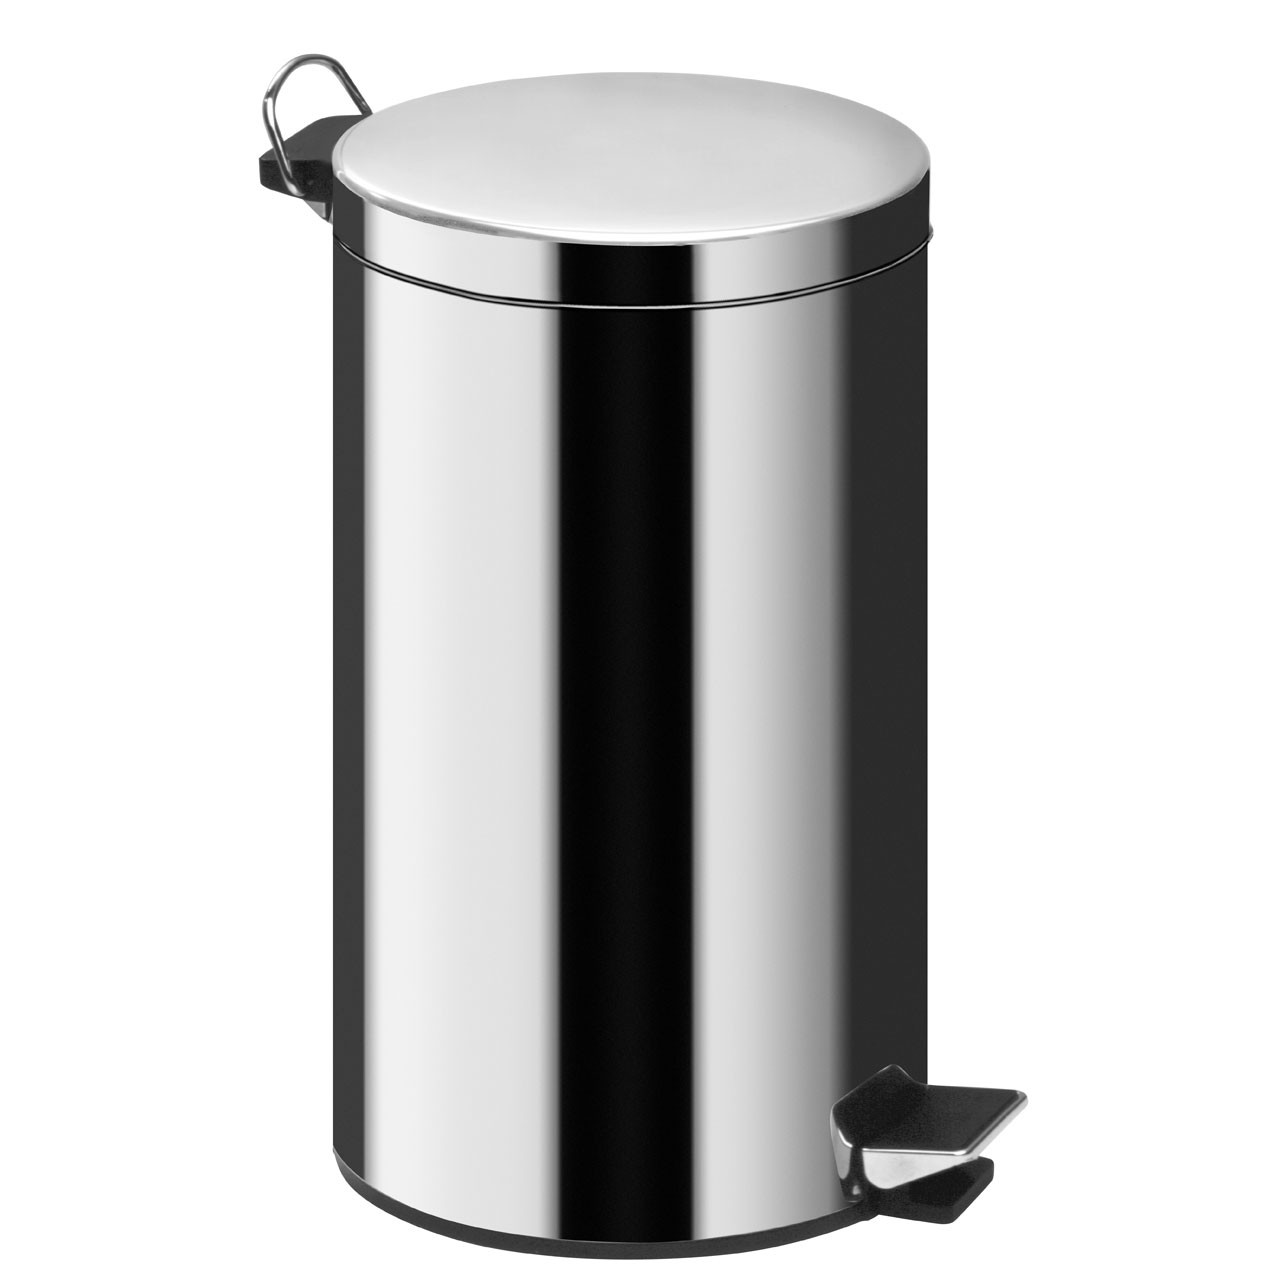 20Ltr Pedal Bin, Mirror Polished Stainless Steel